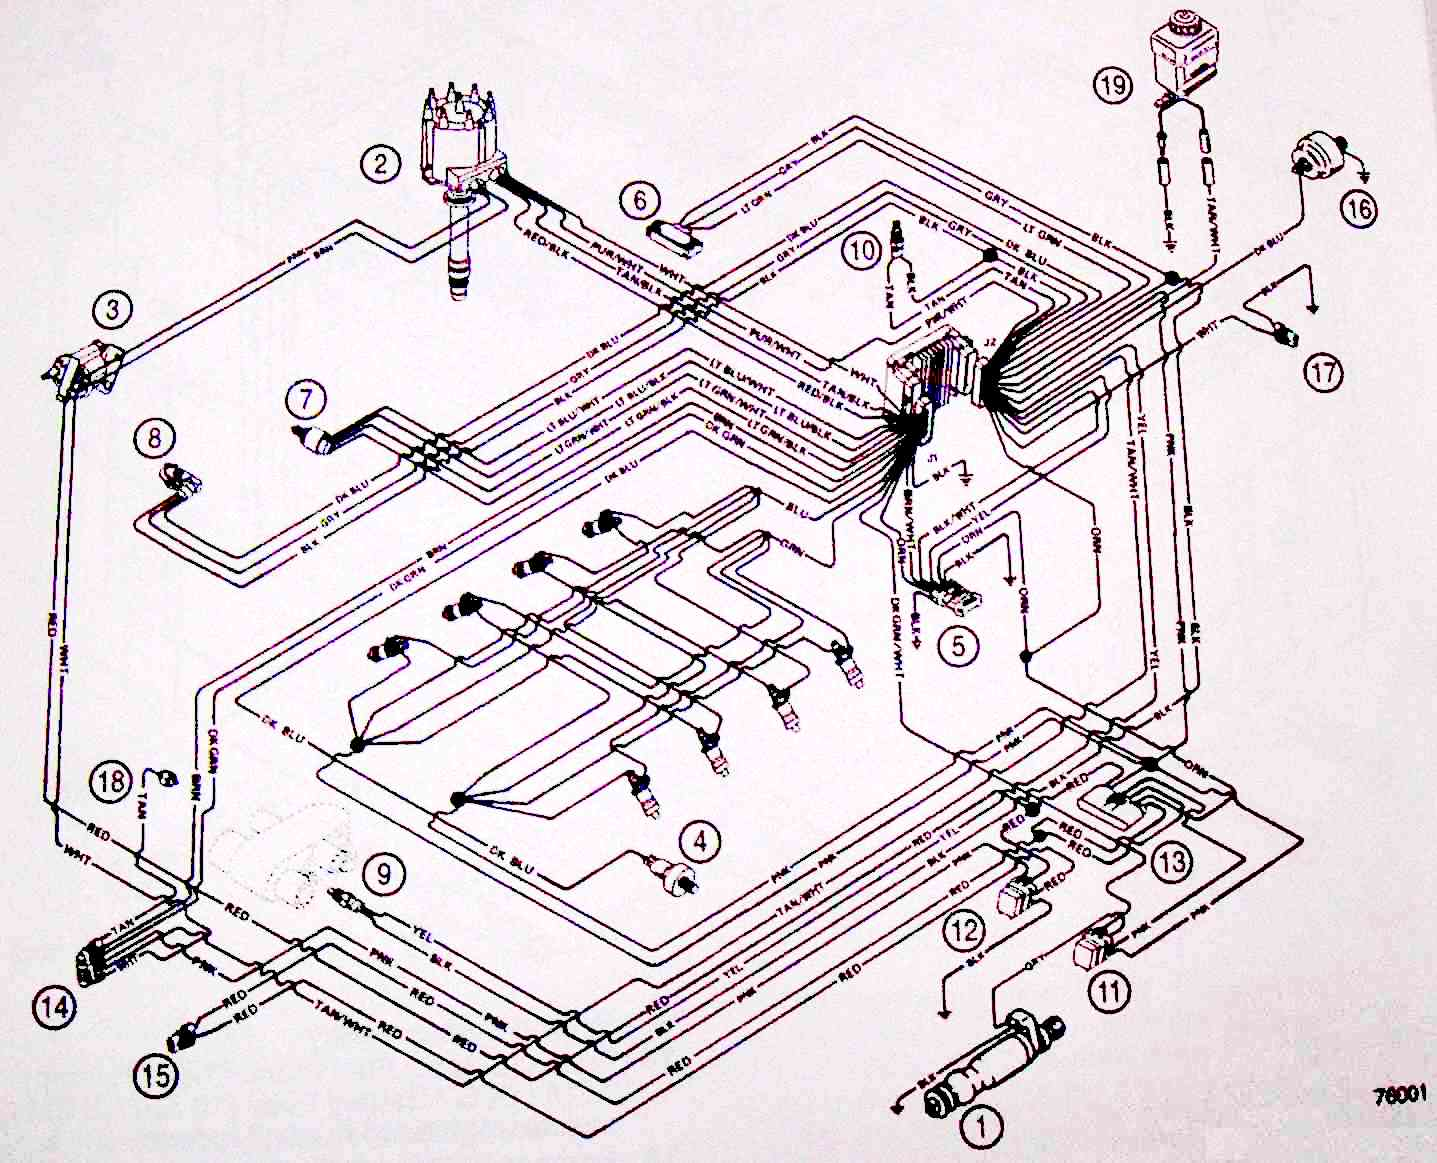 EFIWiring76001 michael's tractors (simplicity and allis chalmers garden tractors mercruiser wiring harness diagram at bayanpartner.co